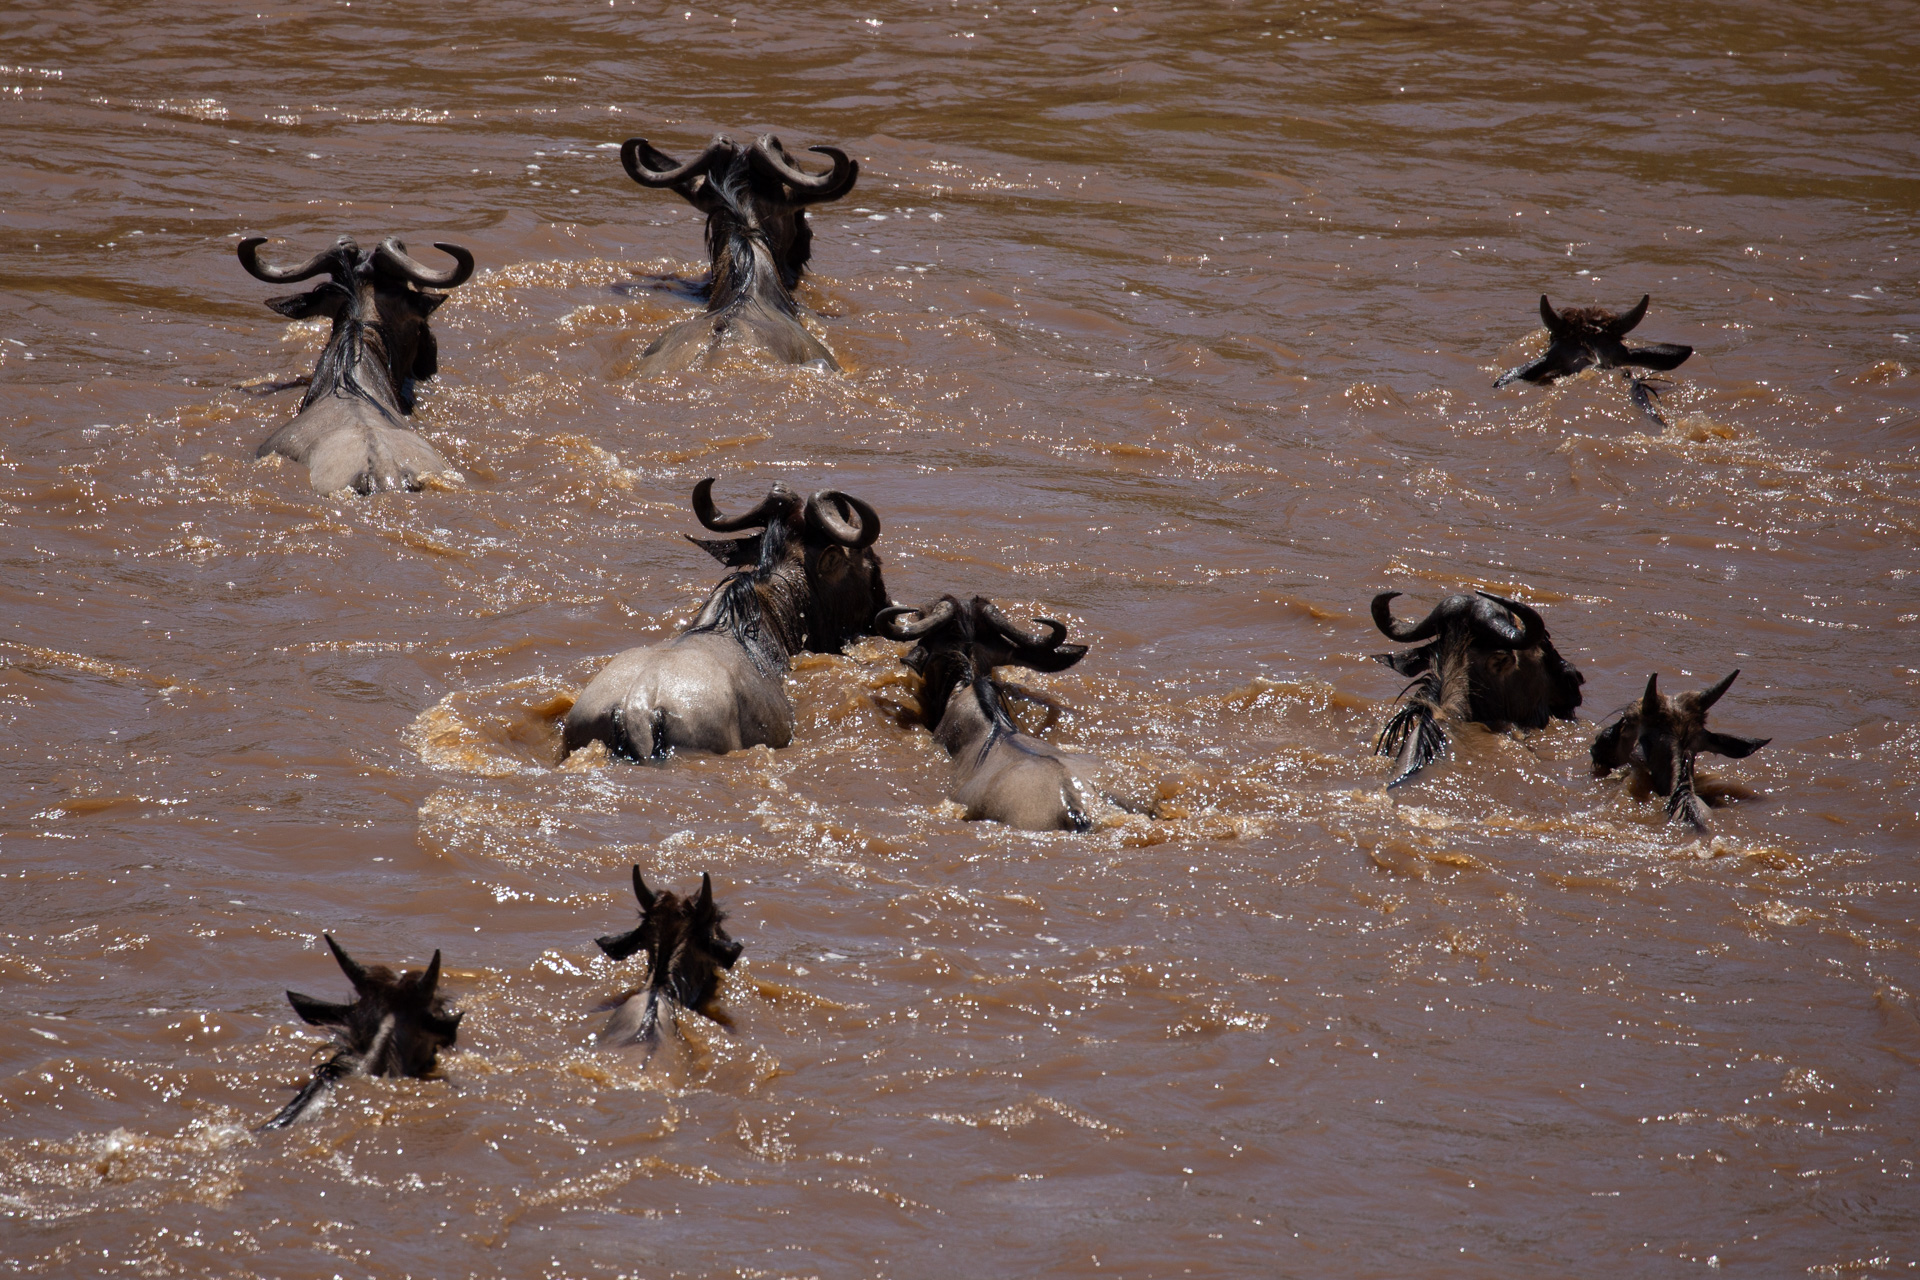 The crossing in the Mara